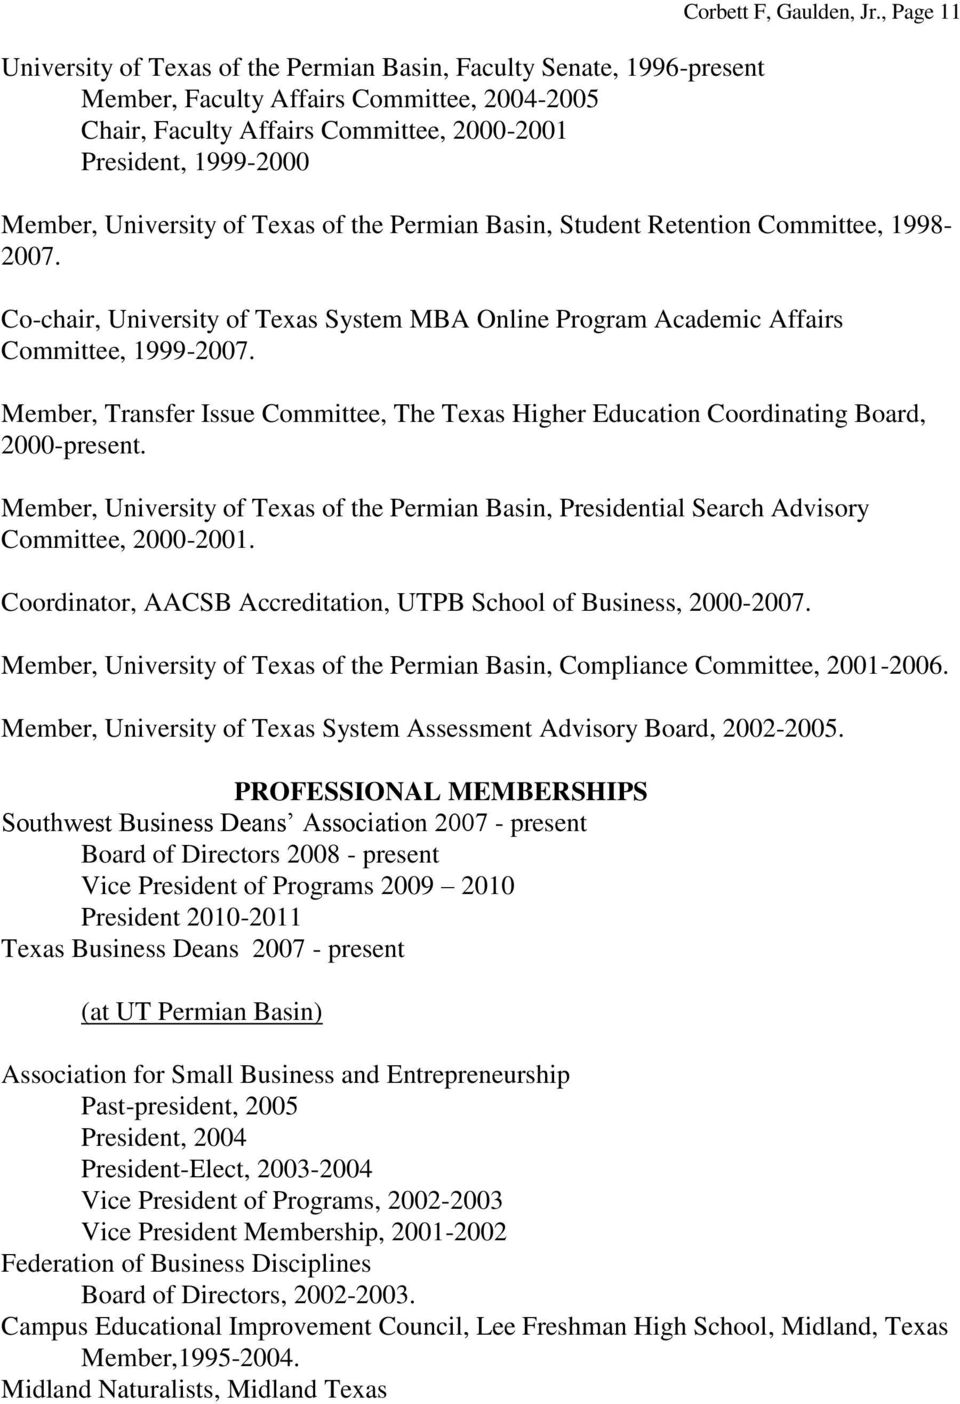 Co-chair, University of Texas System MBA Online Program Academic Affairs Committee, 1999-2007. Member, Transfer Issue Committee, The Texas Higher Education Coordinating Board, 2000-present.